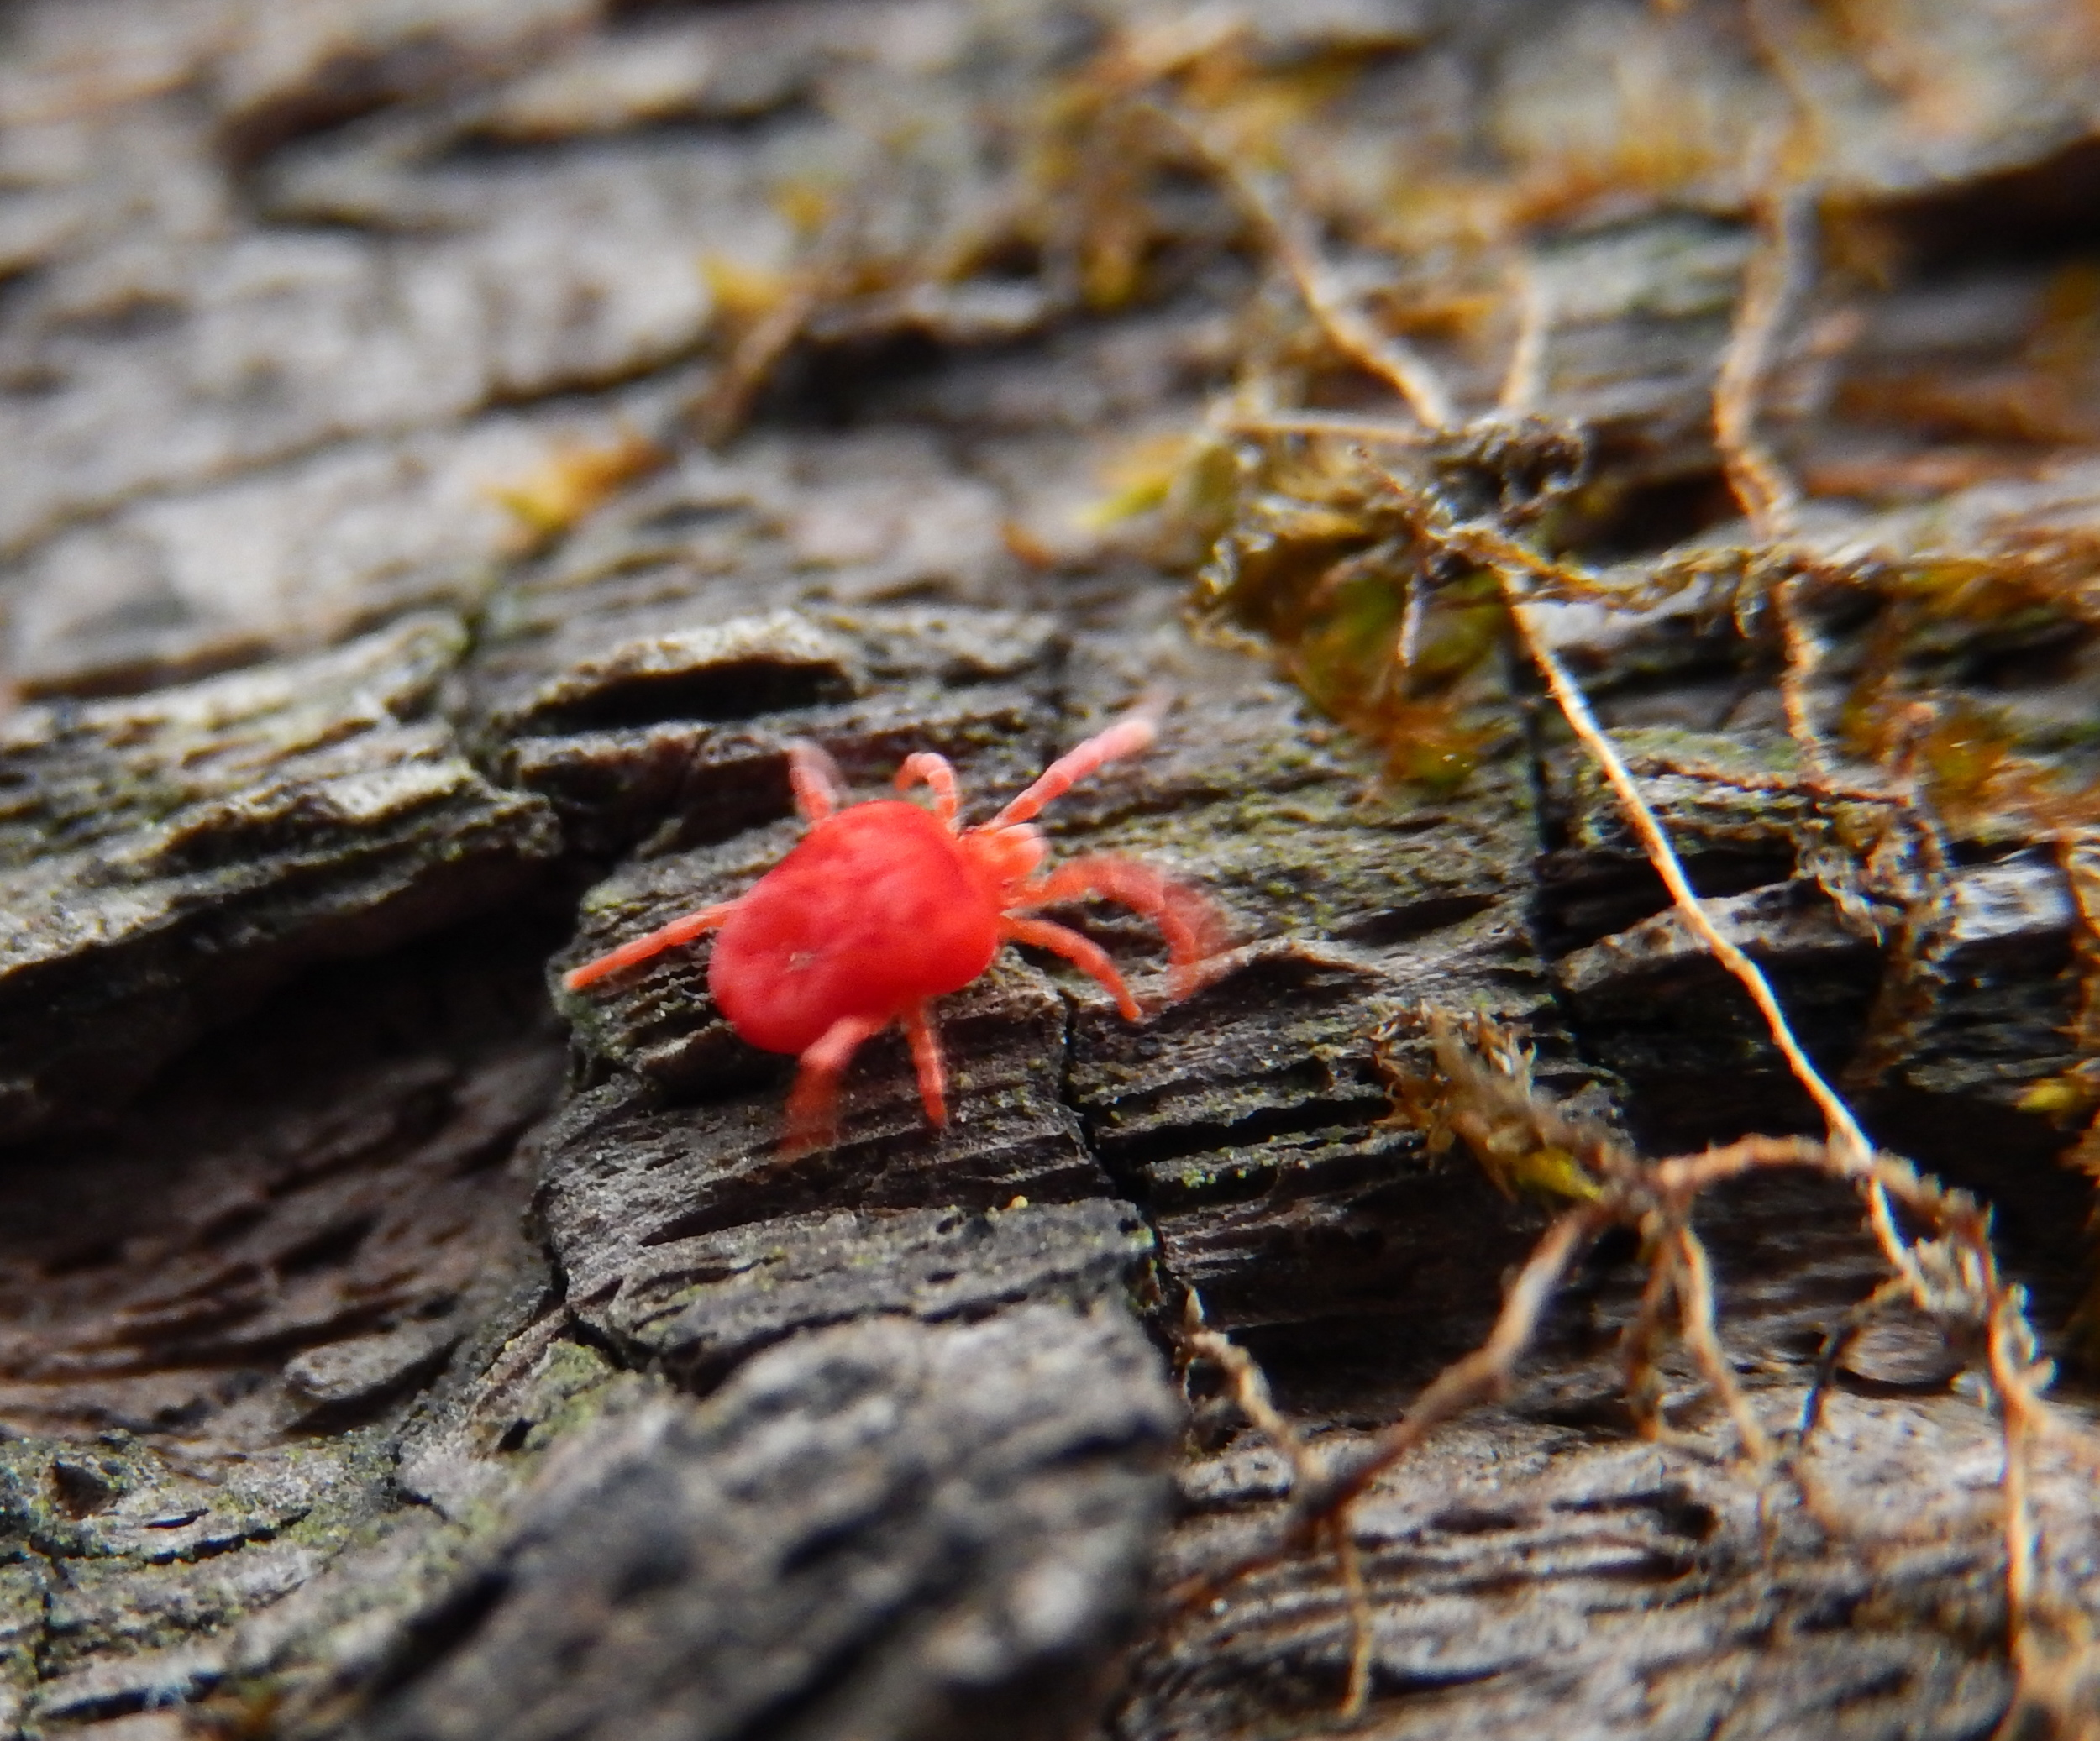 tiny Velvet Mites found in and under the damp logs (tiny but on the move (blurry))